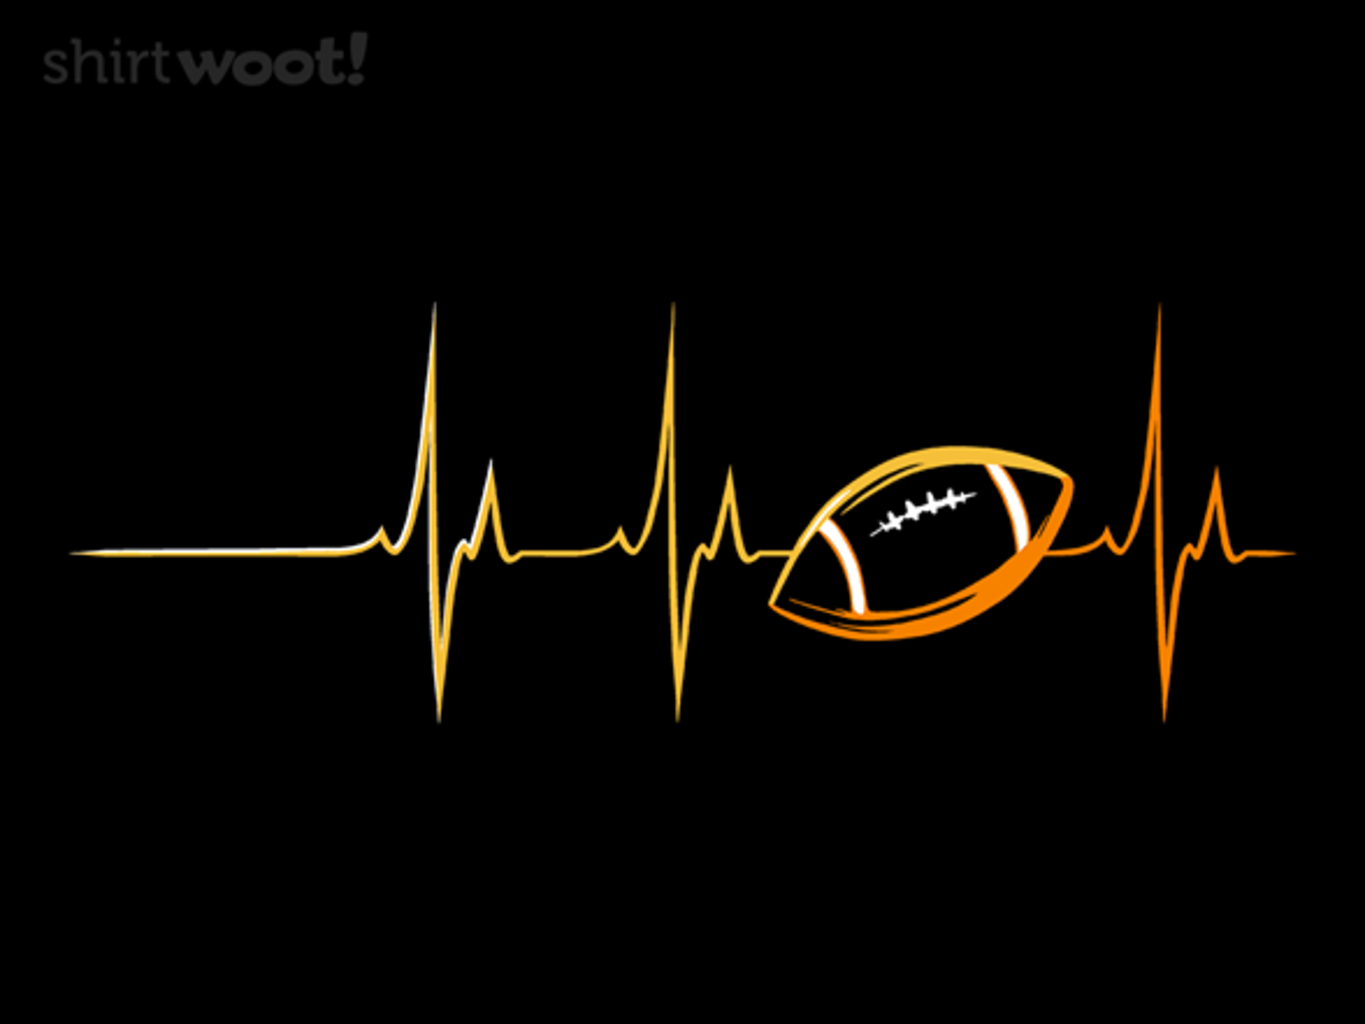 Woot!: Heartbeats for Football